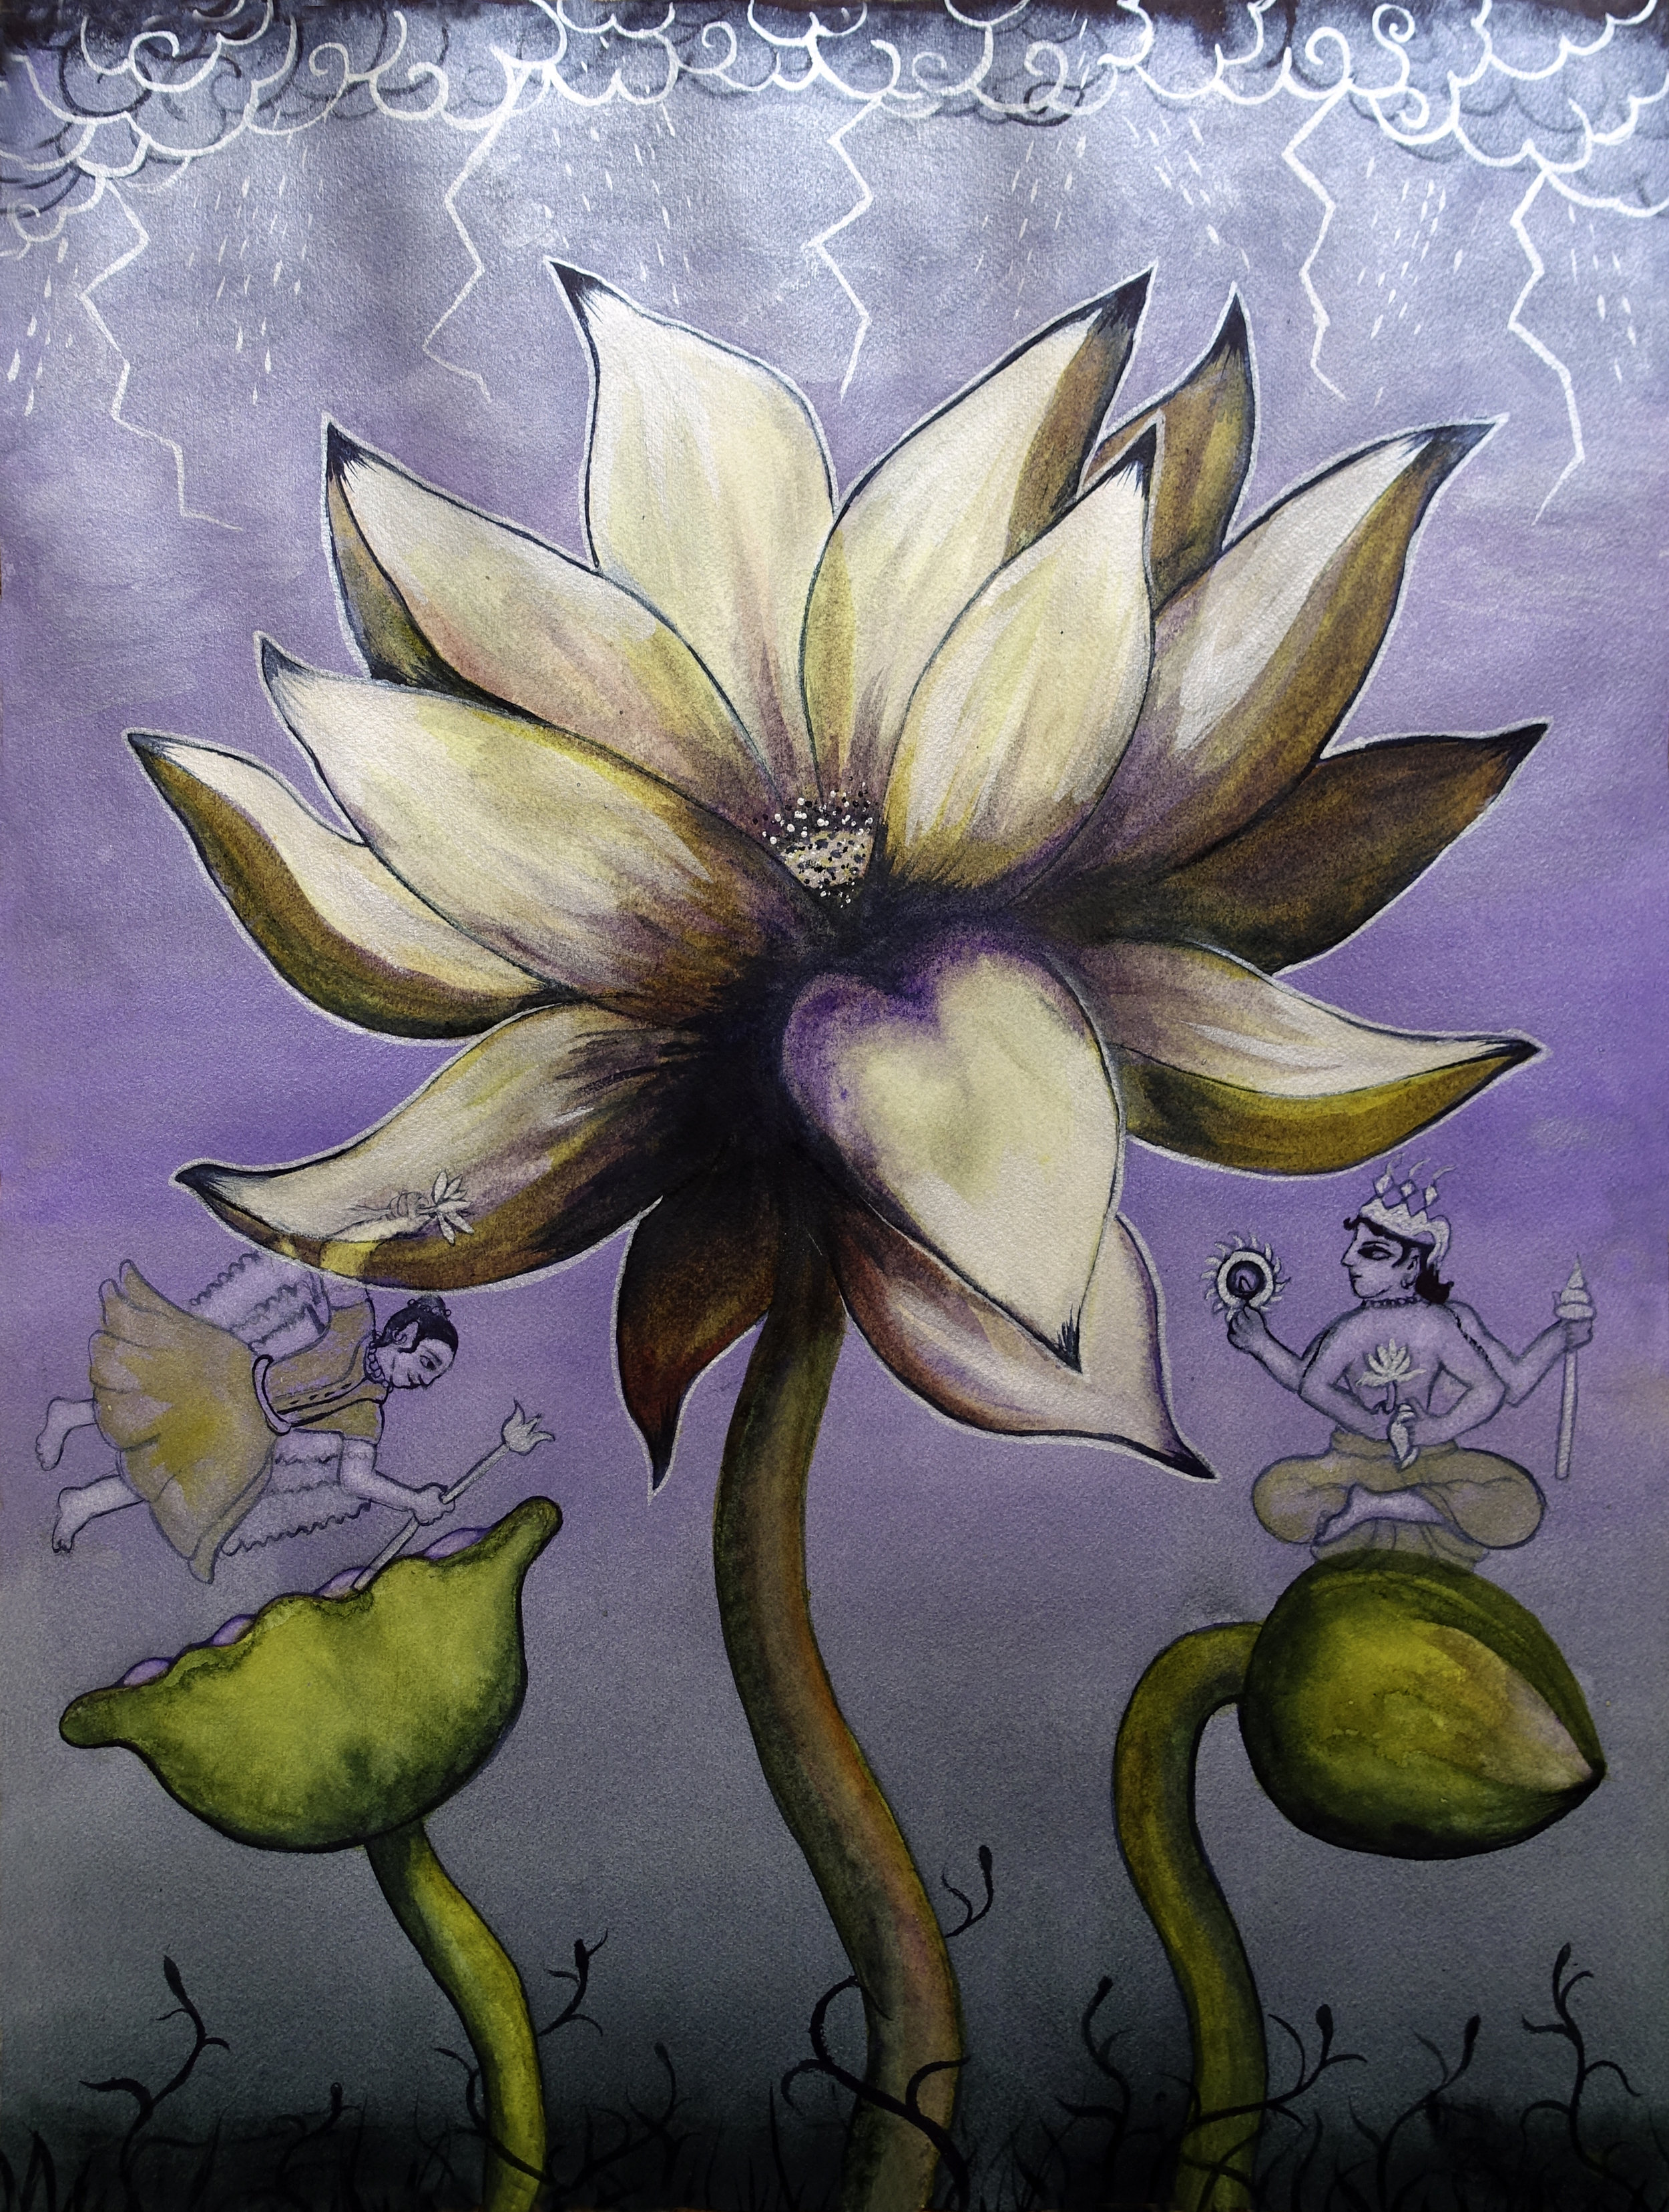 """Lotus, Number 12p, Series 2 (monsoon, celestial being, & Sri Vishnu)   Watercolor on Arches 140# WC Paper 24"""" x 18"""" (60.96cm x 45.72cm) © 2017"""